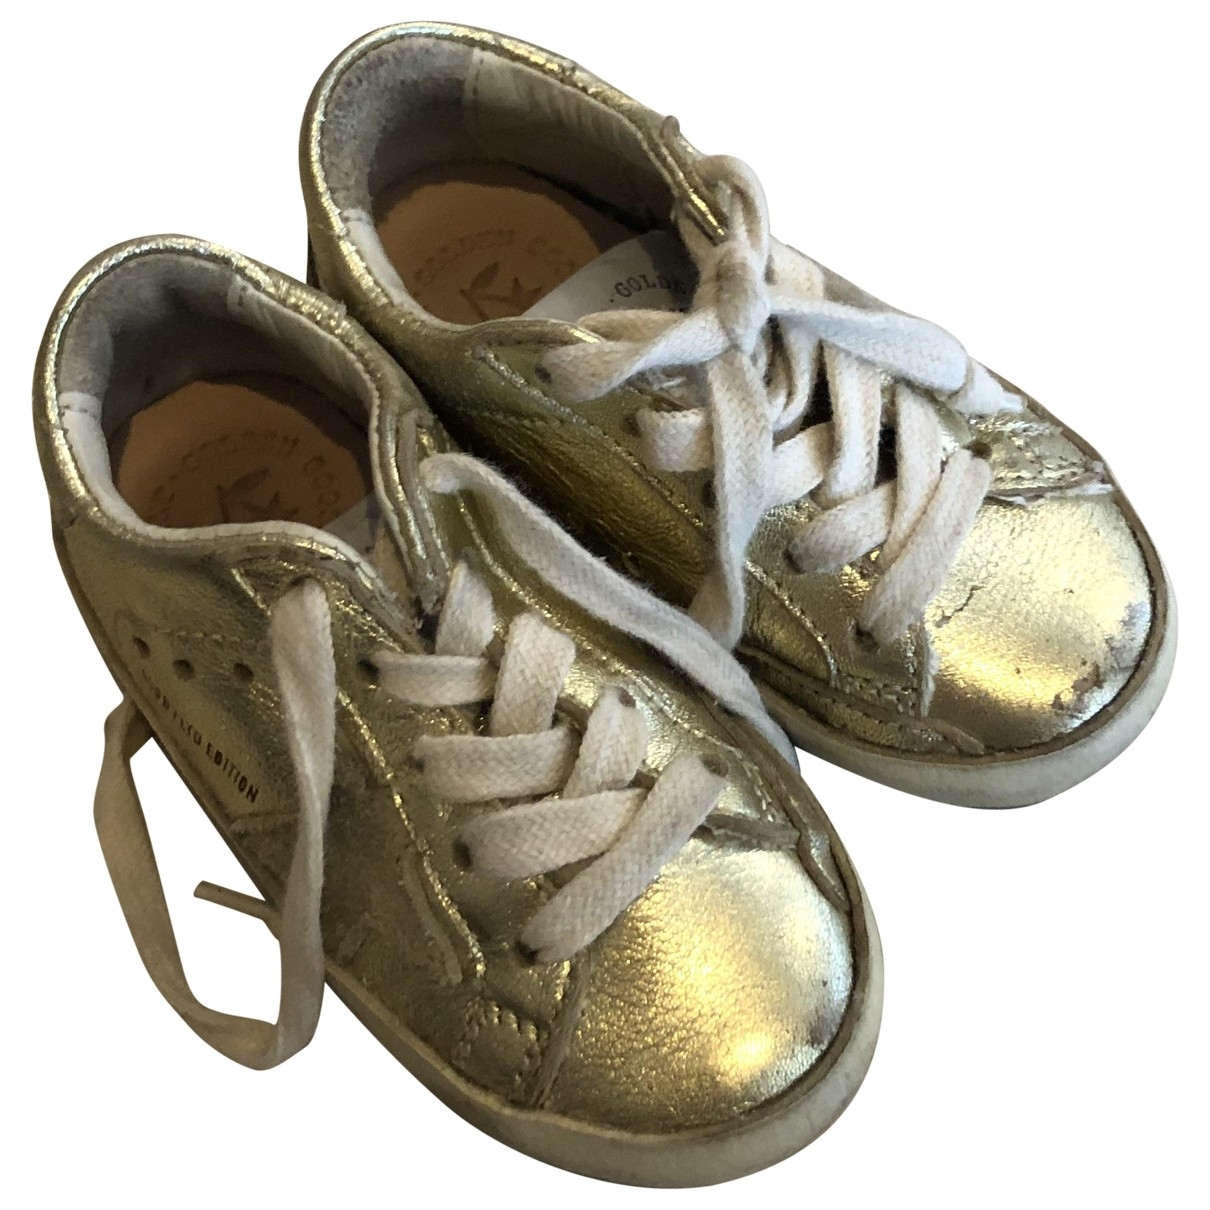 Golden Goose Superstar Gold Leather Trainers for Kids 22 EU